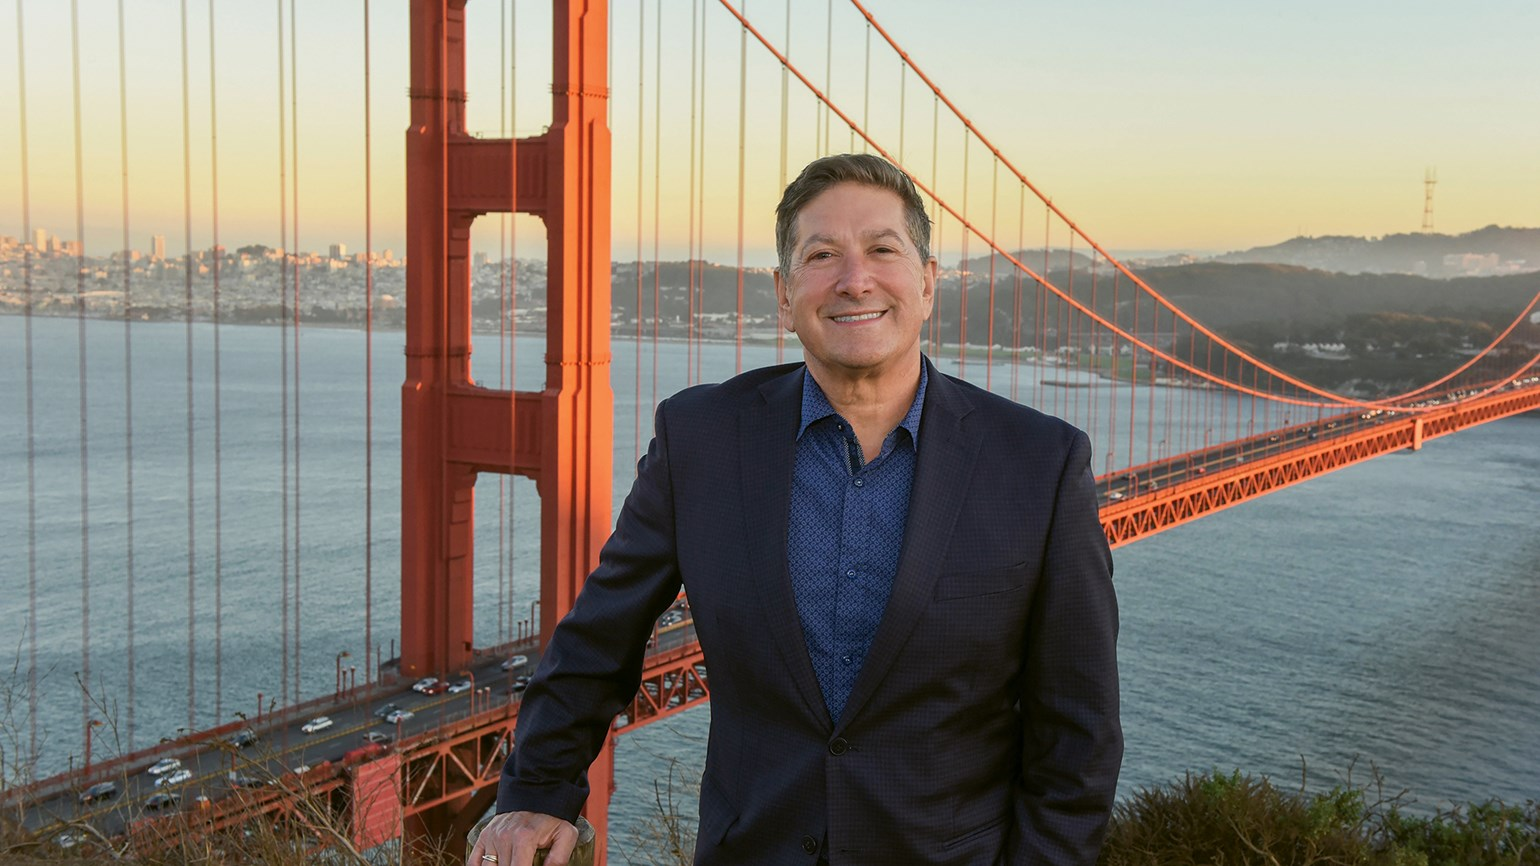 San Francisco Travel CEO Joe D'Alessandro